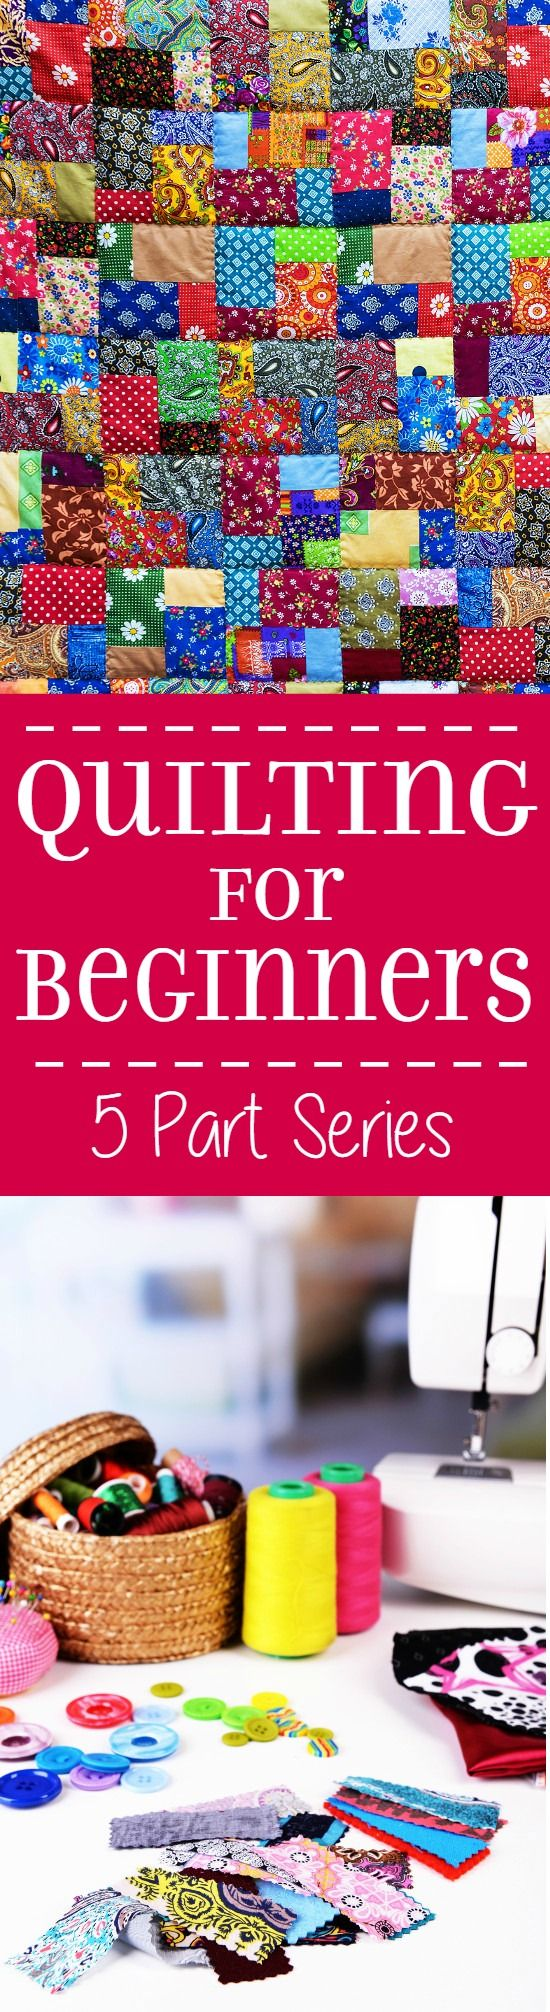 Quilting for Beginners: Make beautiful DIY quilts even if you're a quilting or sewing newbie. A tutorial and tip guide for making a quilt from start to finish.Quilting for Beginners teaches newbies how to quilt from the basics, start to finish. This 5 part series walks you through each step of quilt making.